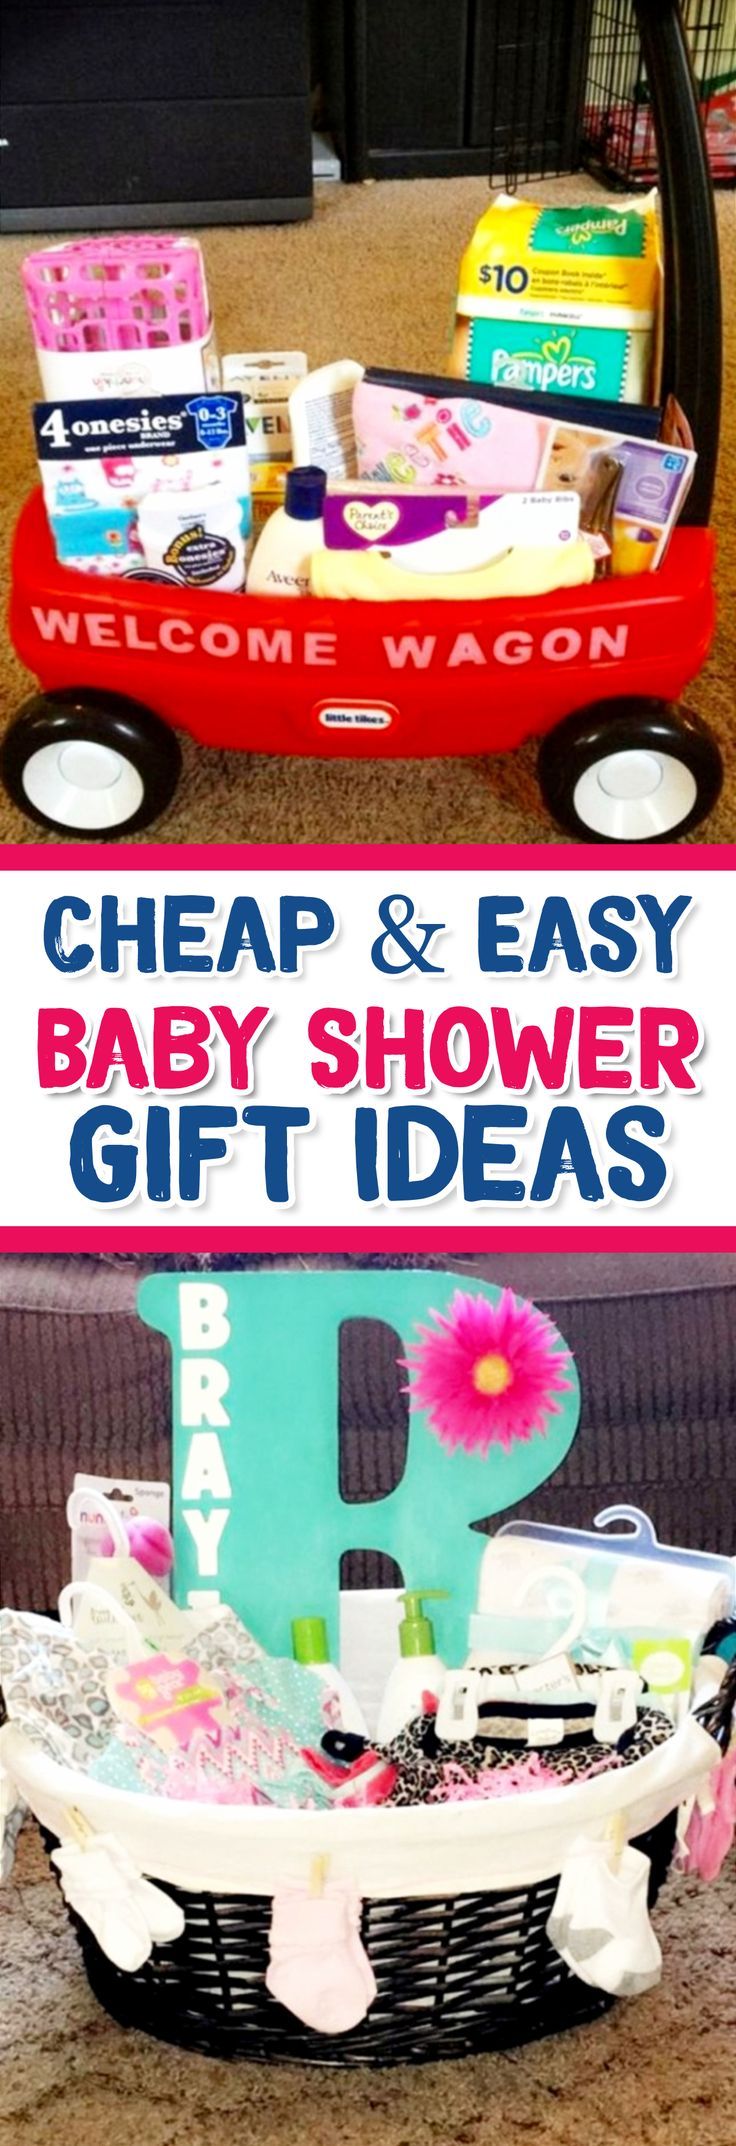 Baby Shower Gift Ideas - Cheap & Easy DIY Baby Shower Gifts for Boys and For Girls (gender neutral baby shower gift ideas too)